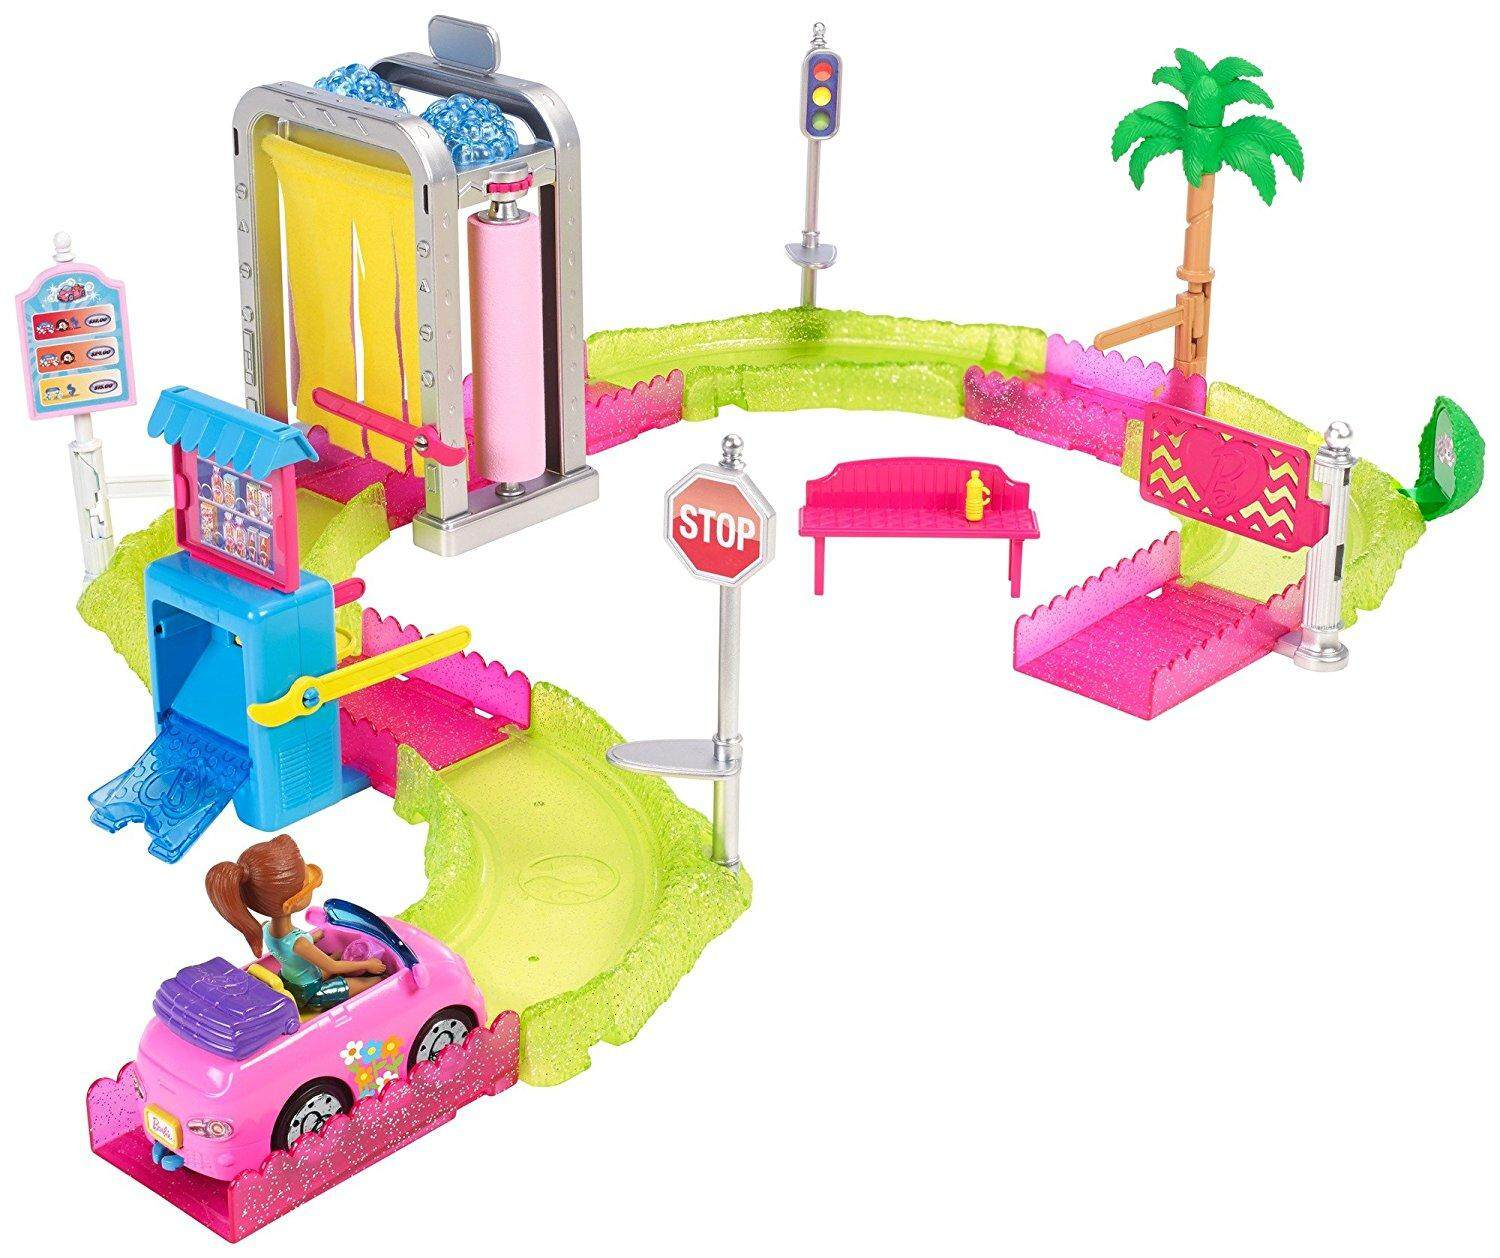 [BARBIE] On the Go Car Wash Playset (4 yrs+) toys for girls